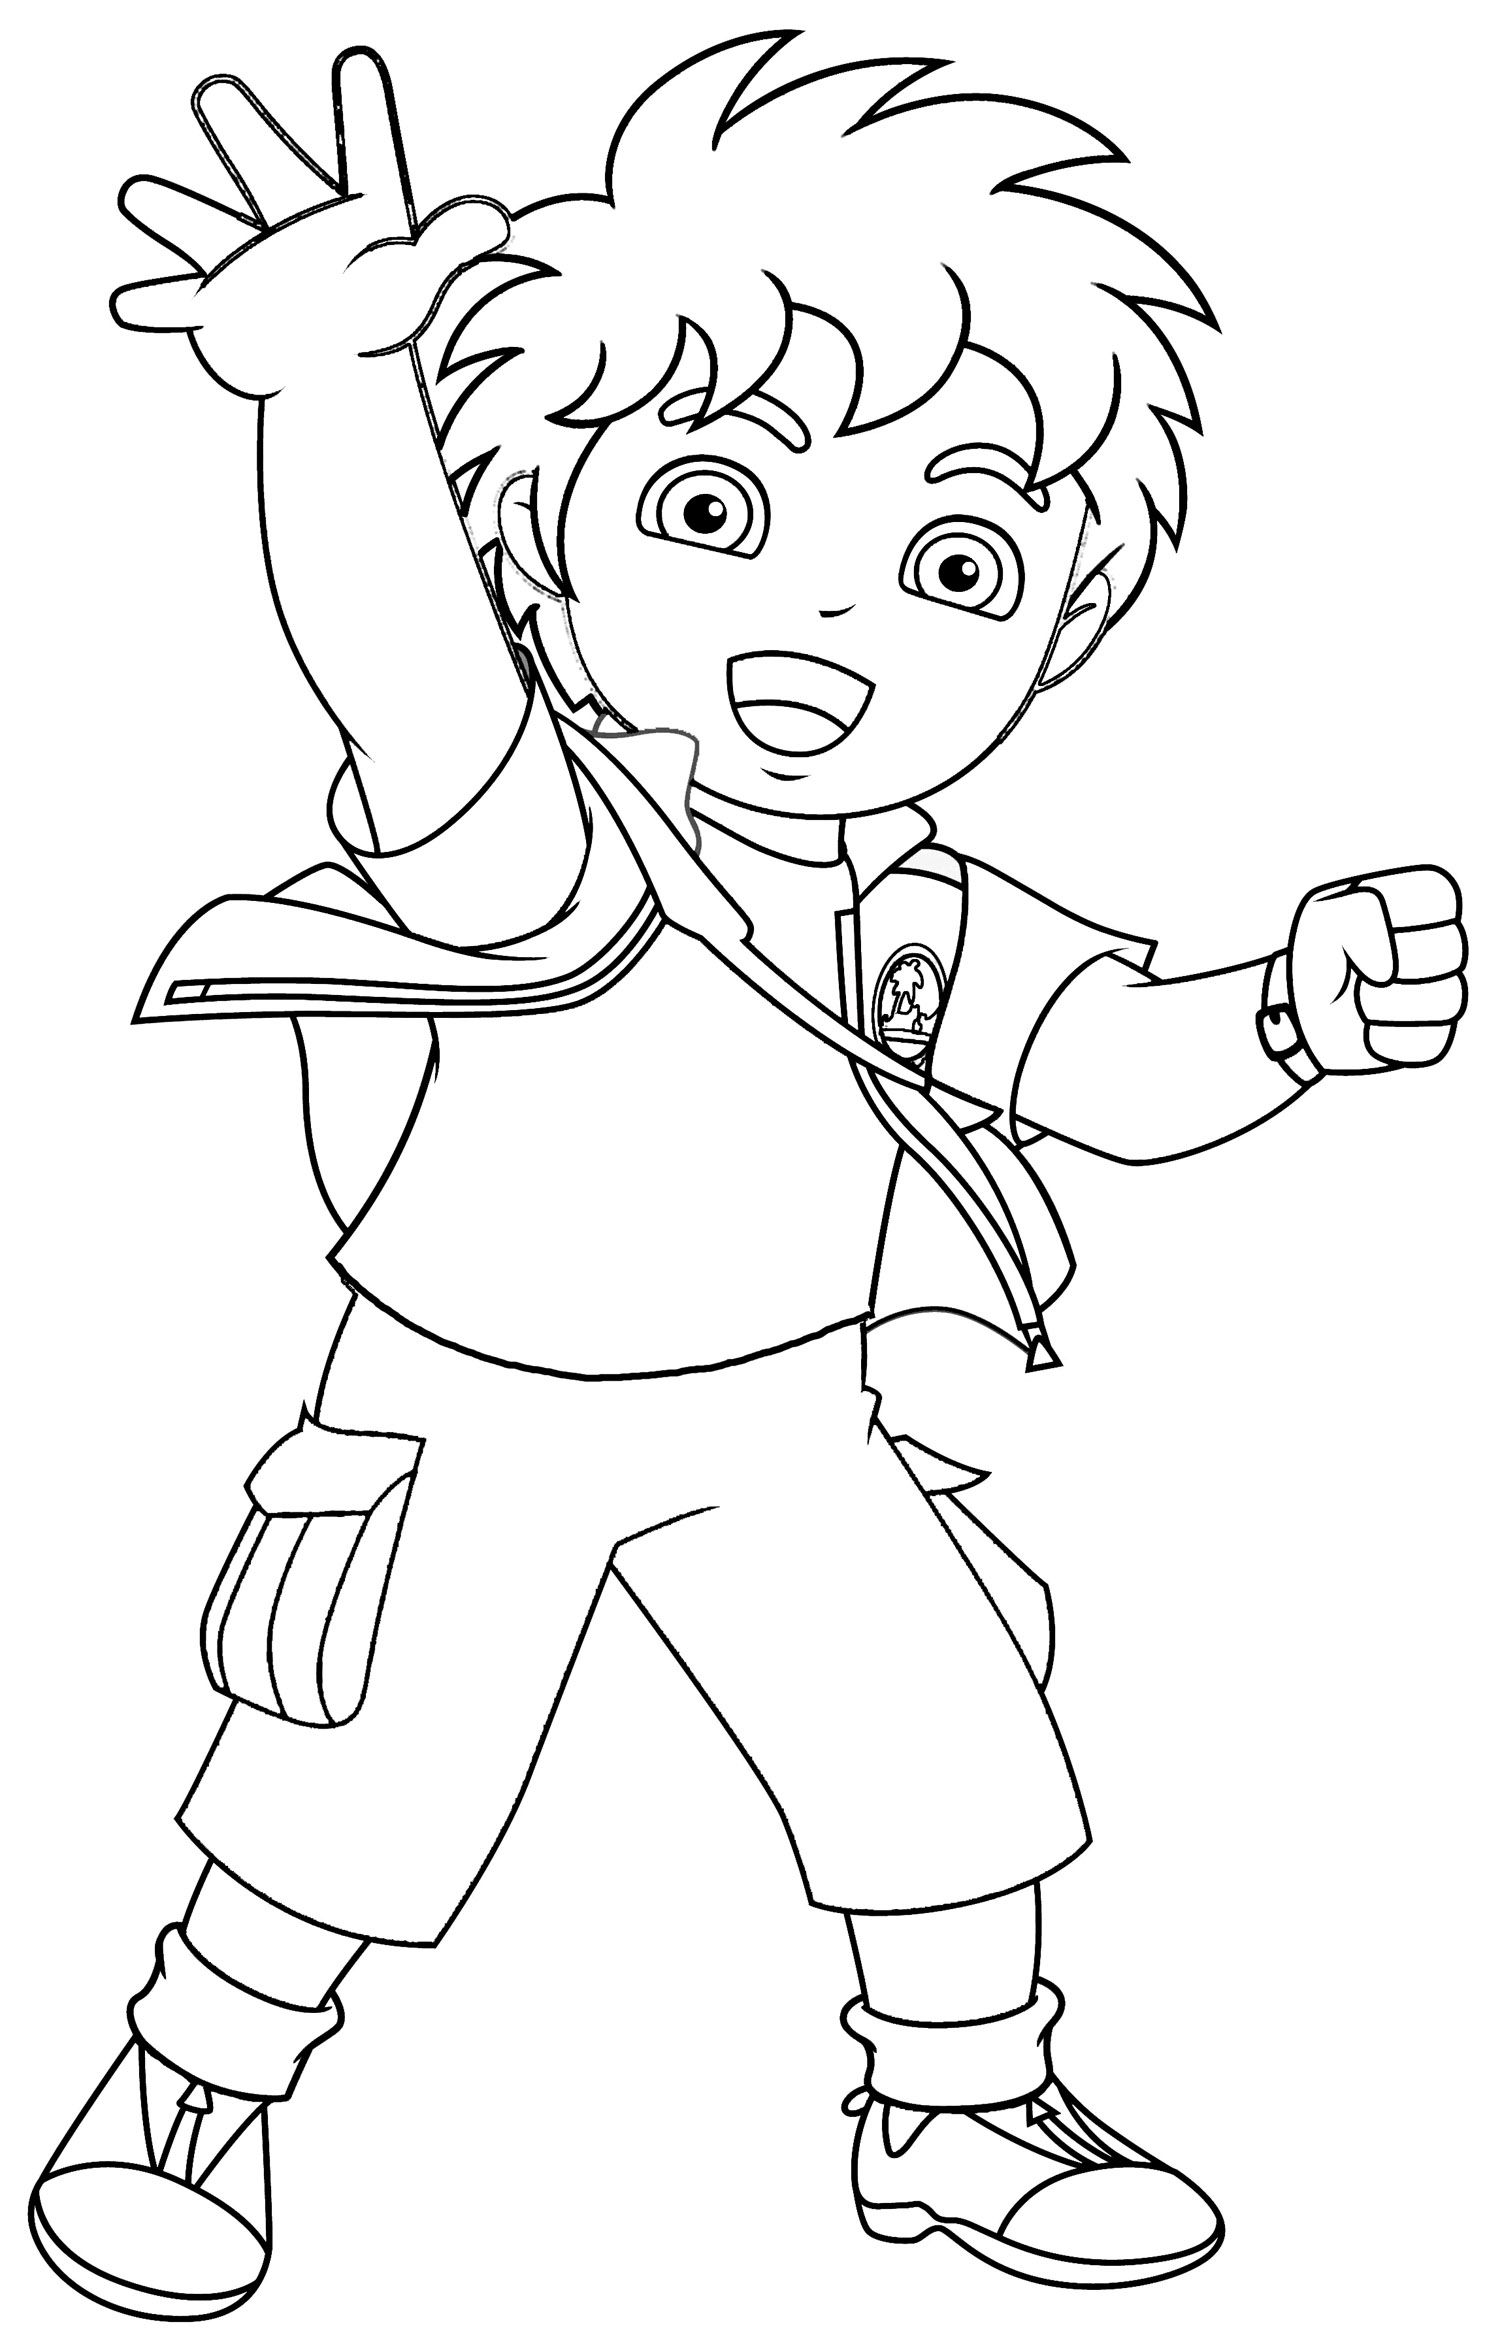 Pin by Coloring Fun on Dora The Explorer | Pinterest